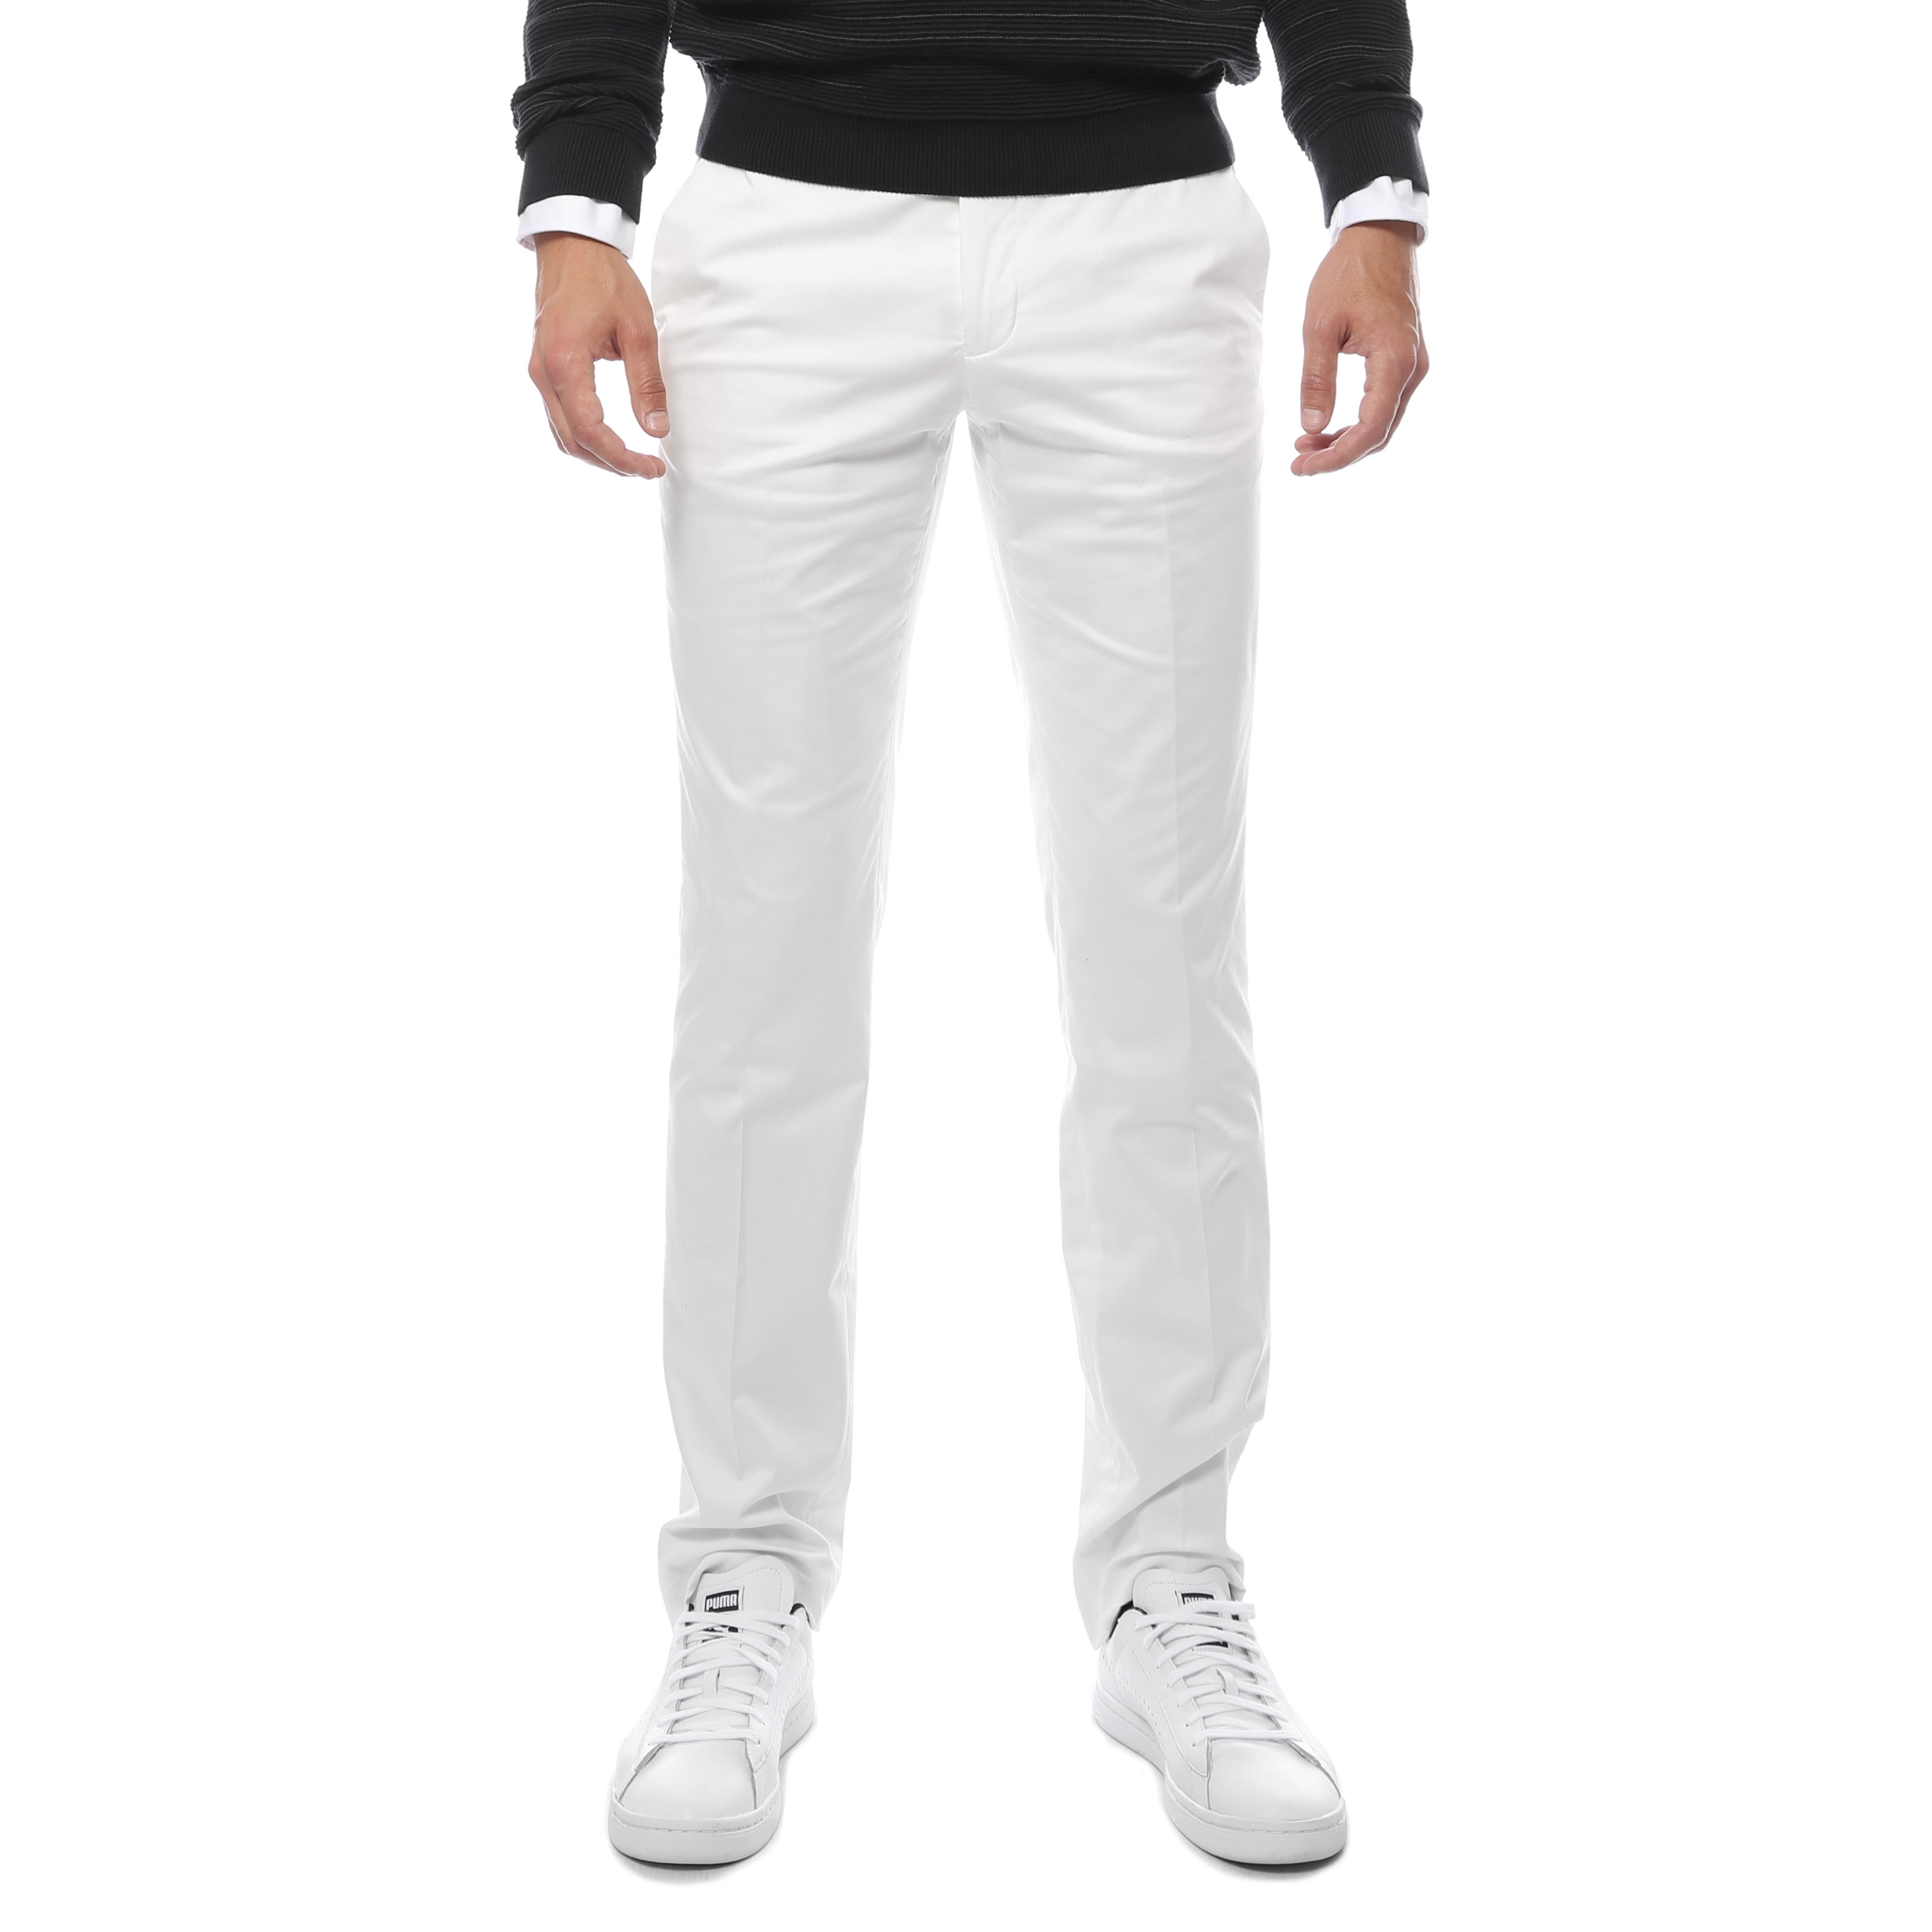 949ffa47b4a Shop Zonettie by Ferrecci Cotton Spandex Straight-leg Business-casual Chino  Pants - Free Shipping On Orders Over  45 - Overstock - 12384834